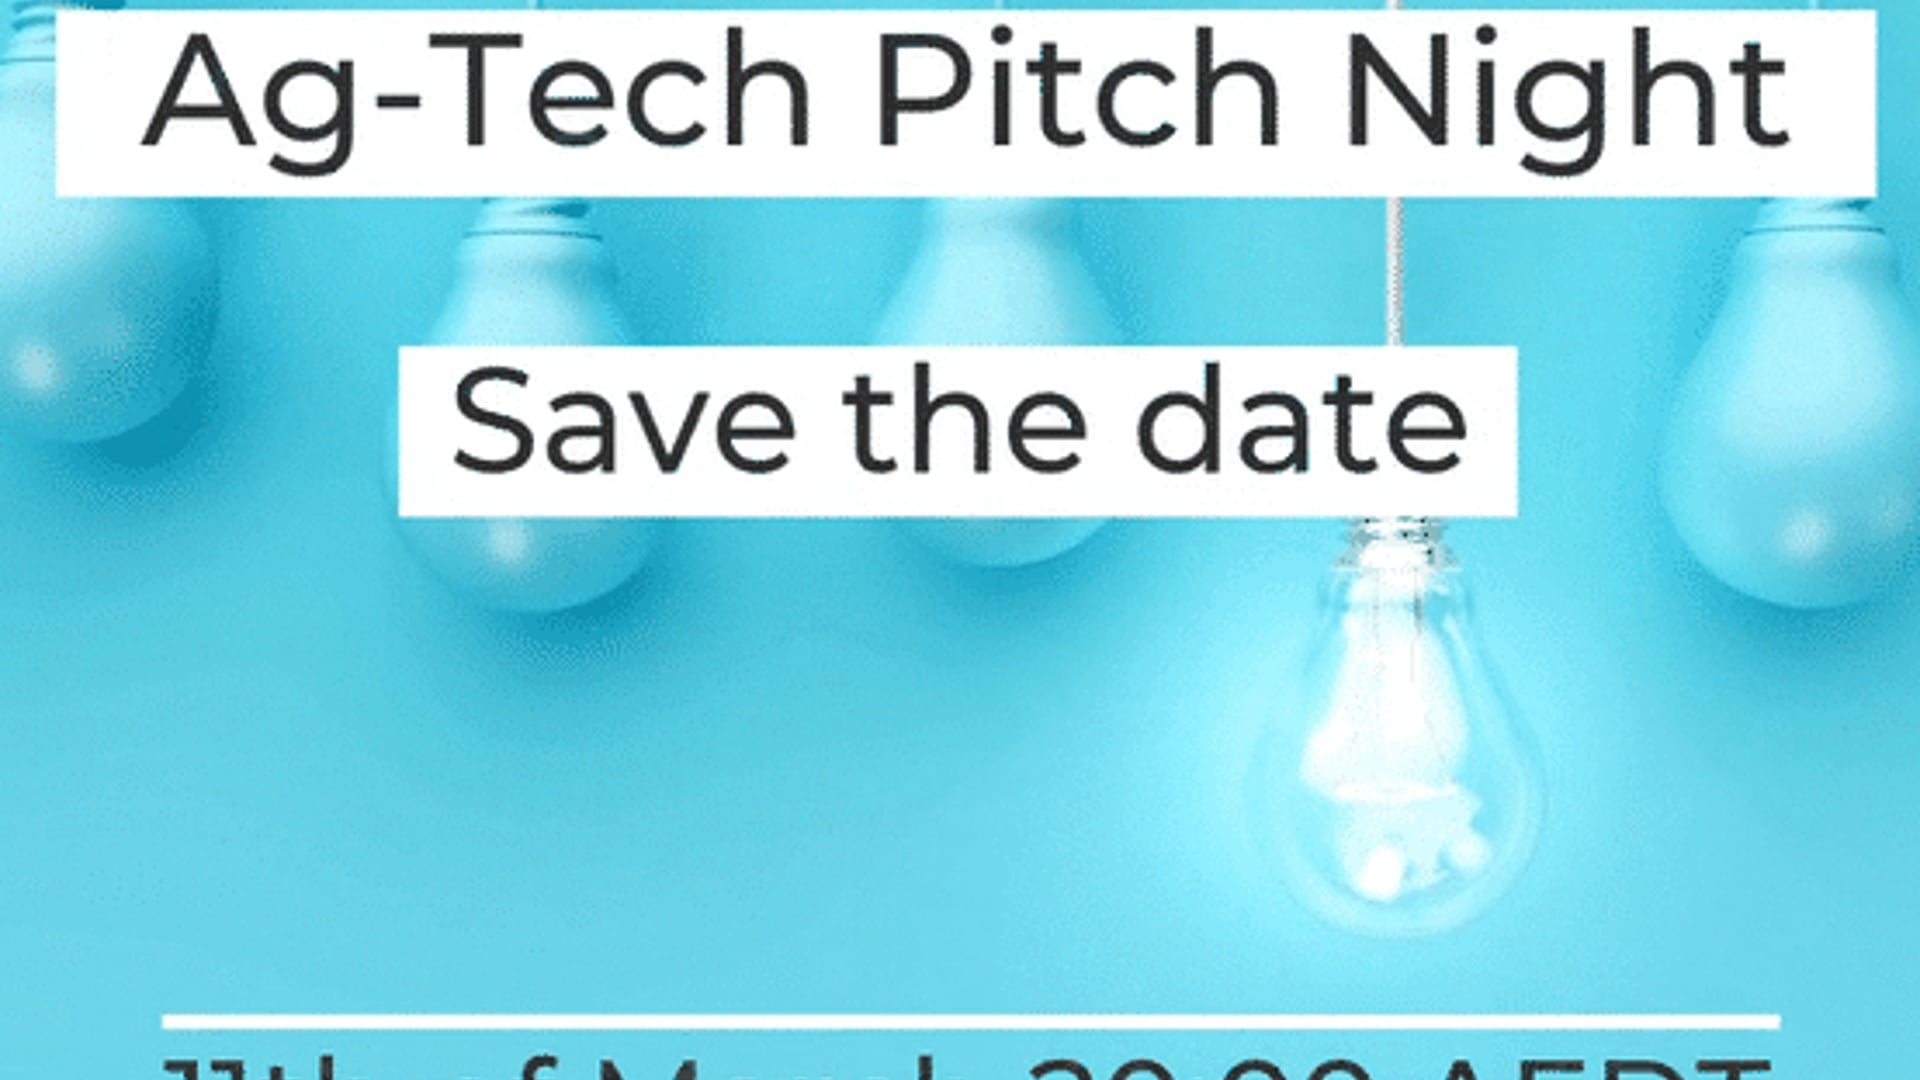 Ag-Tech pitch night Registration is Open